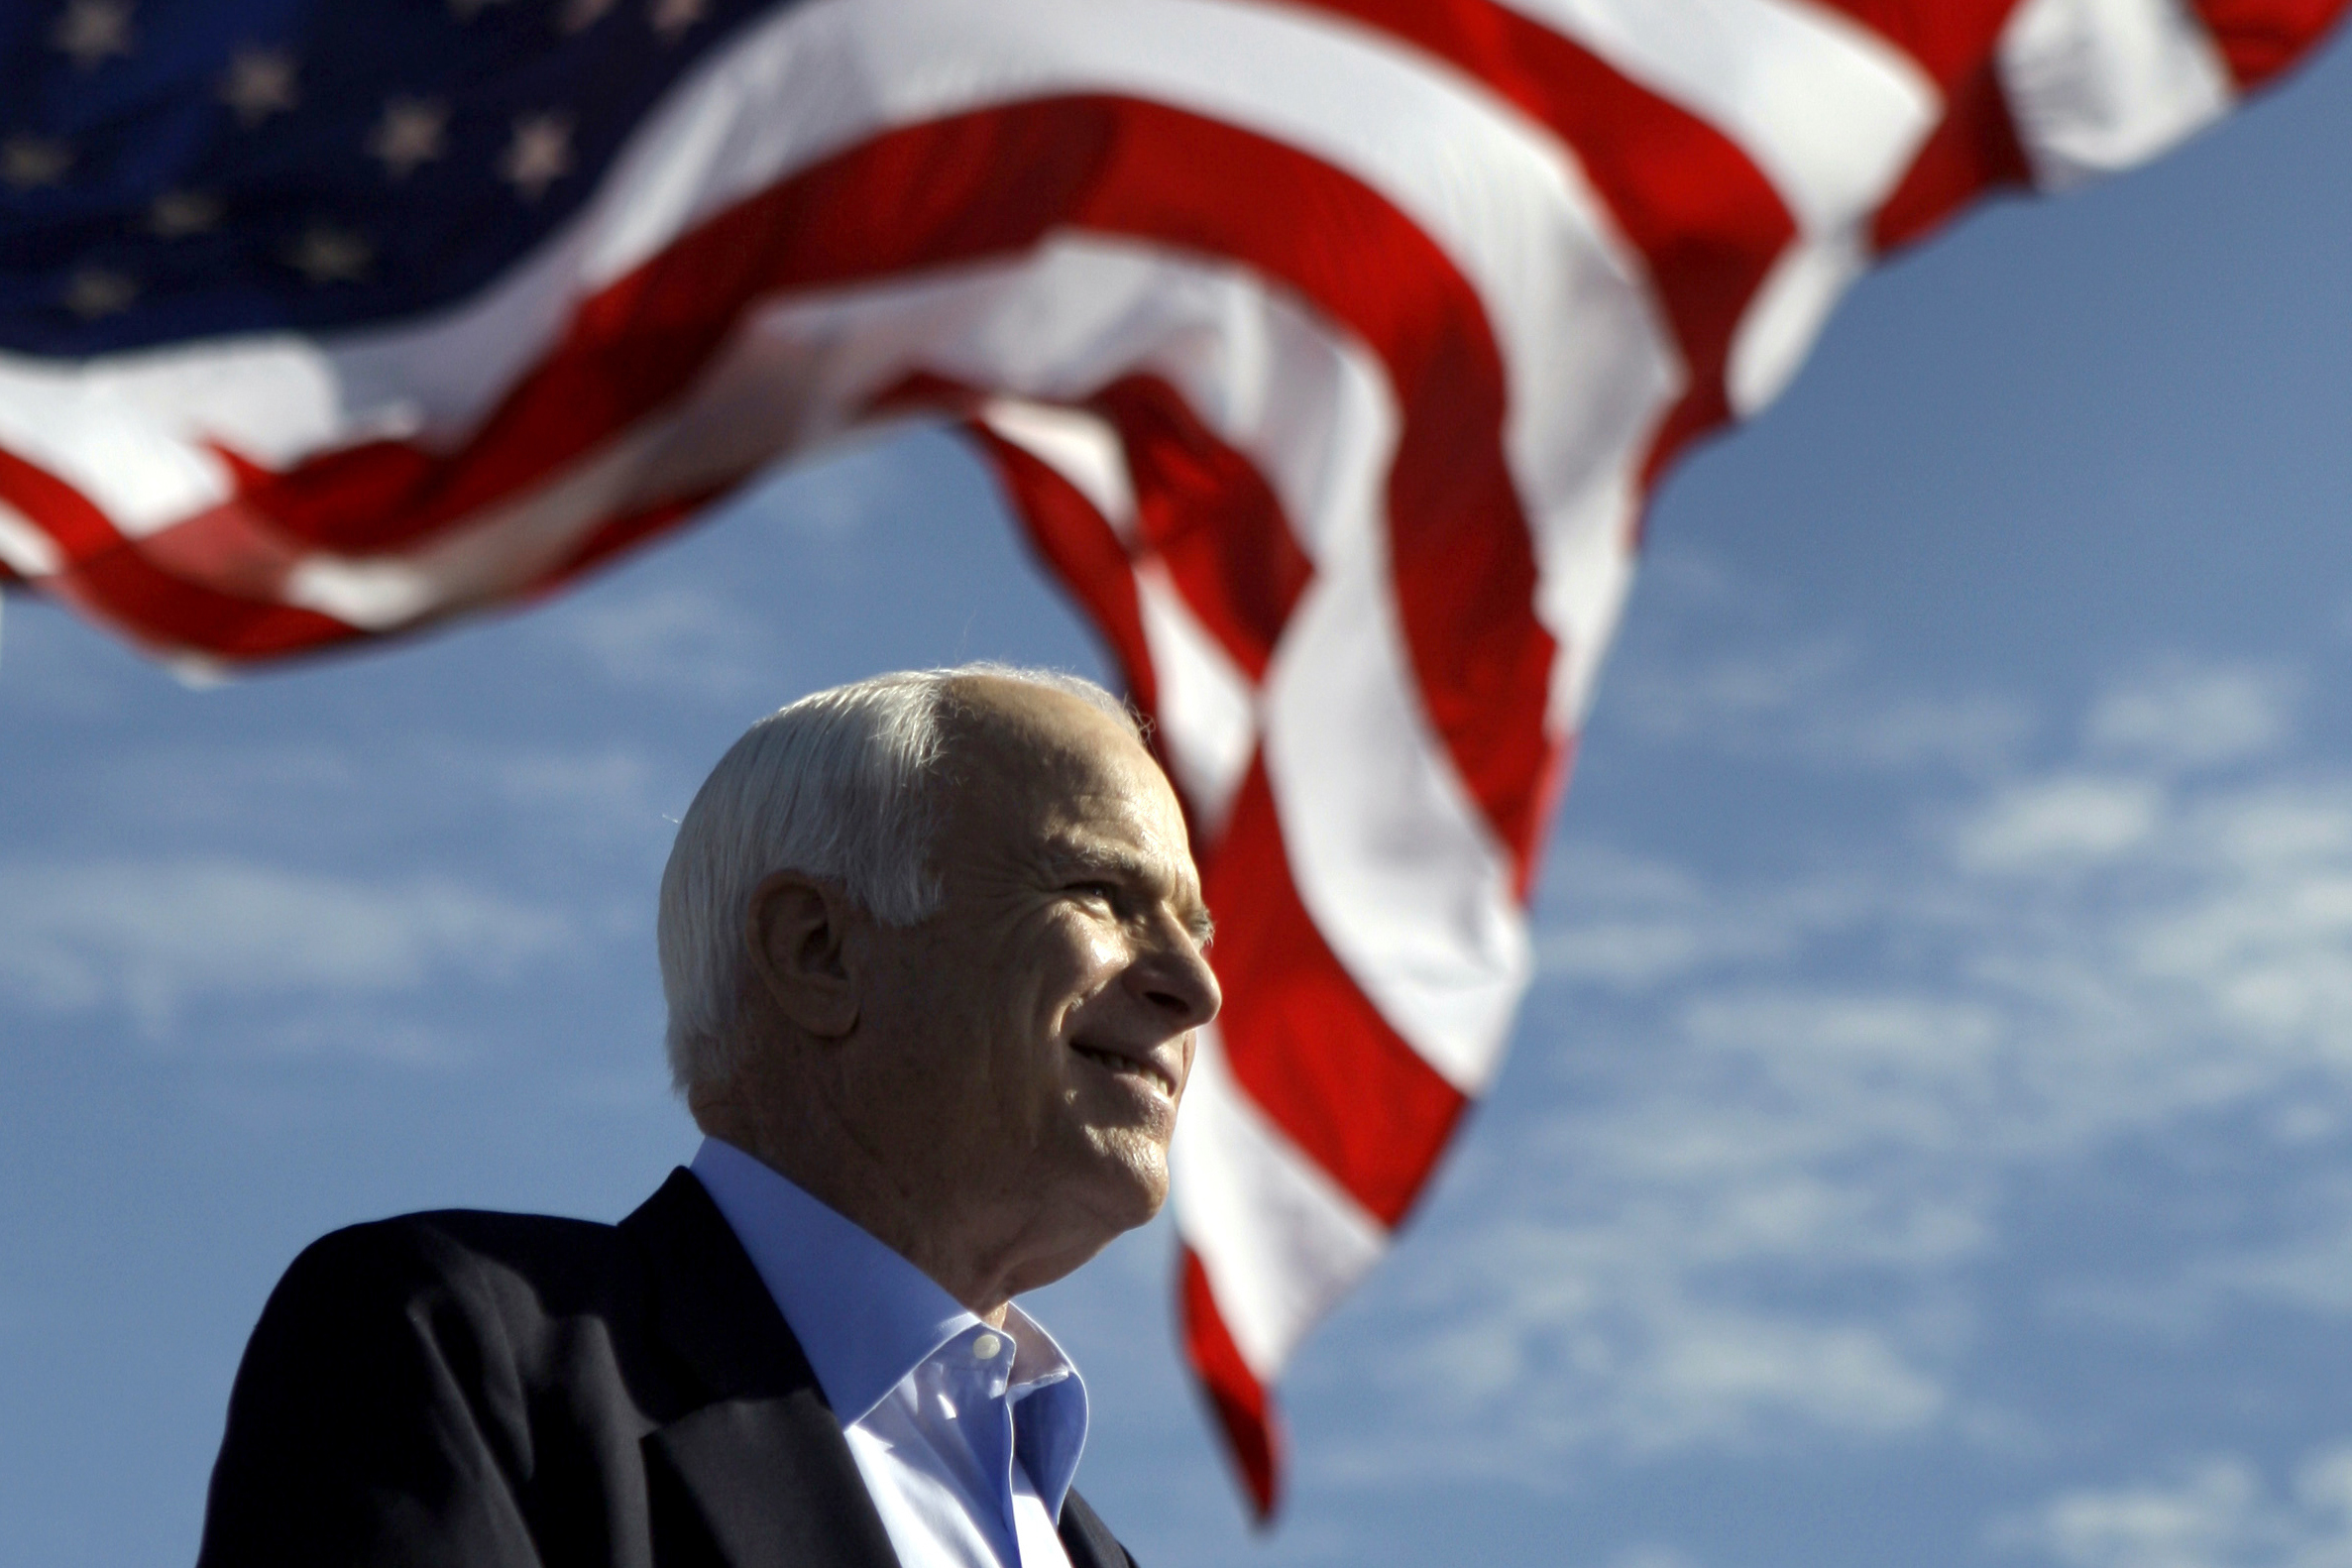 AP FACT CHECK: McCain can't respond but his record speaks